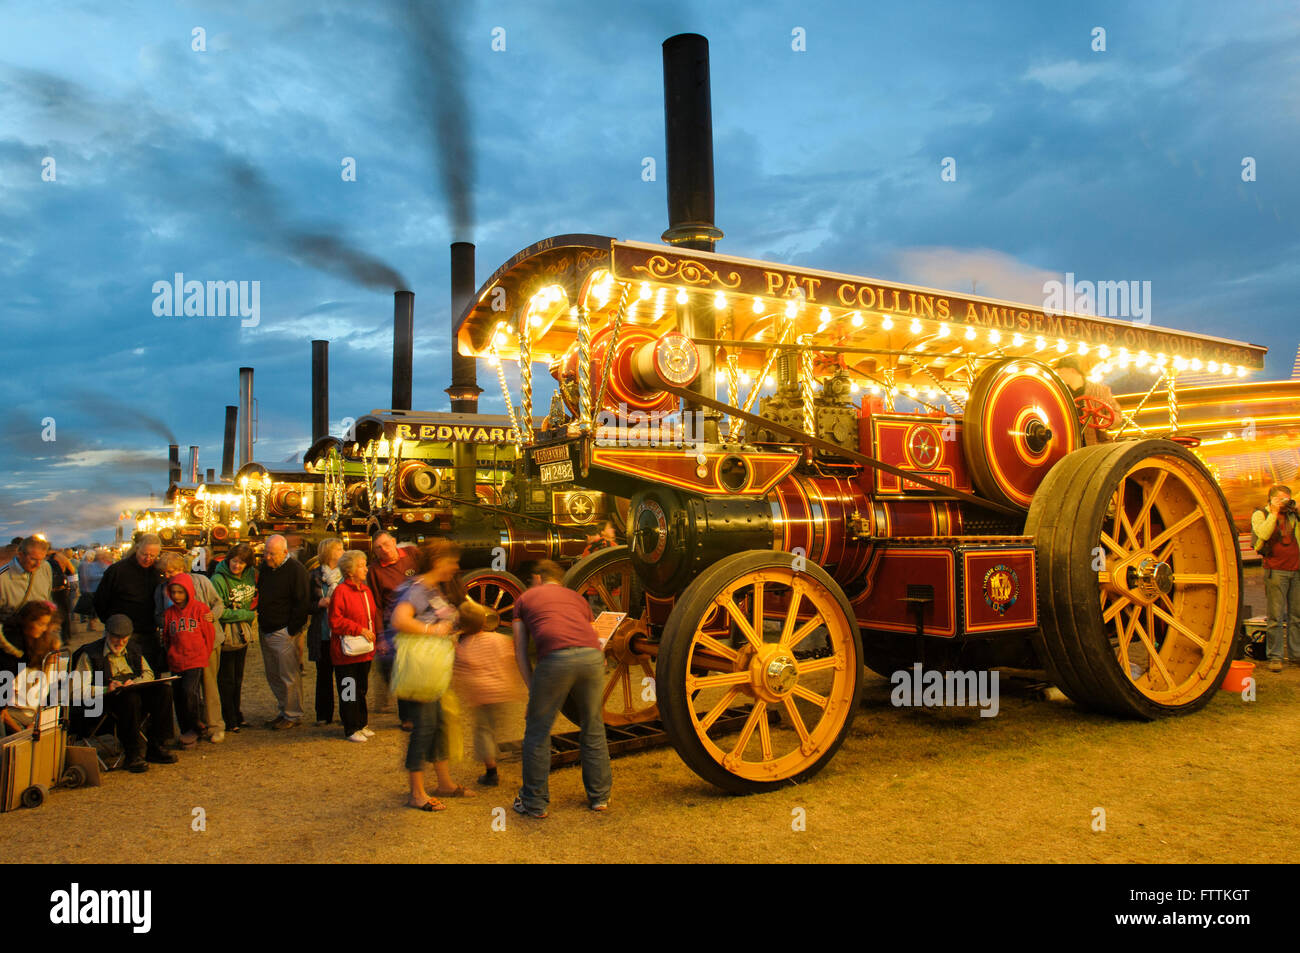 McLaren Showman's Road Locomotive, 'Goliath', DH 2482 at The Great Dorset Steam Fair, 2010, England, - Stock Image